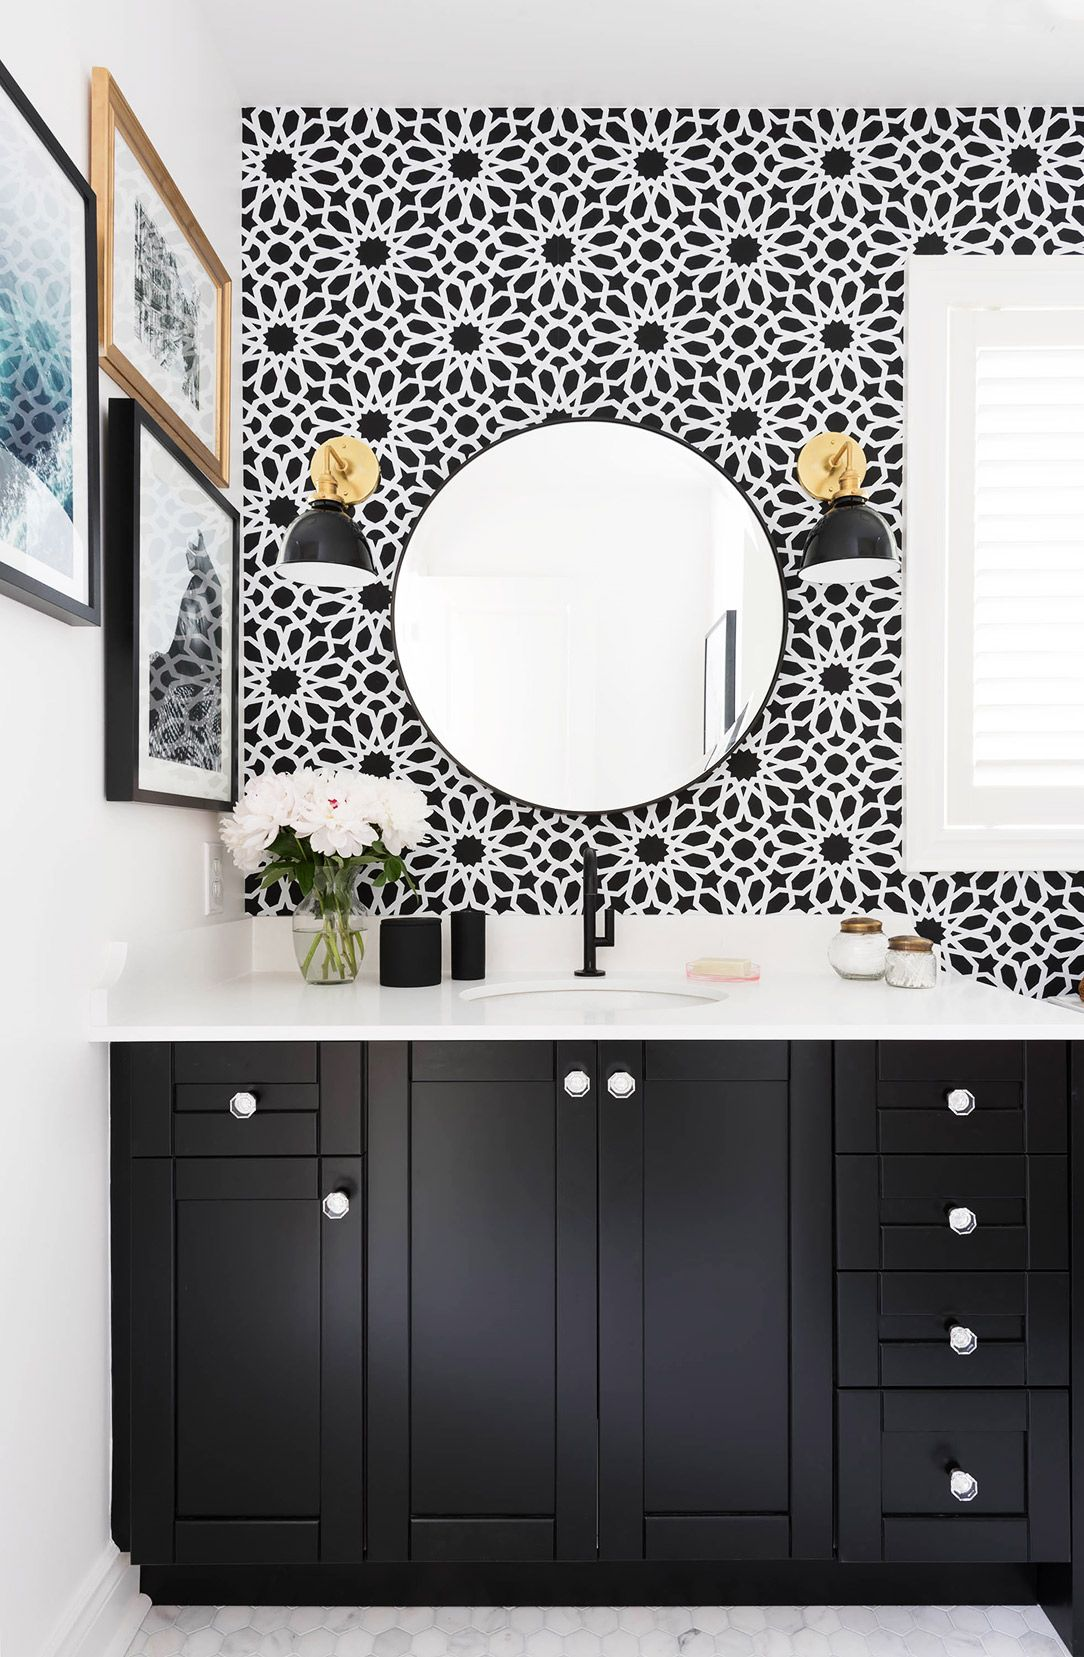 Beau Bathroom Black And White Wallpaper